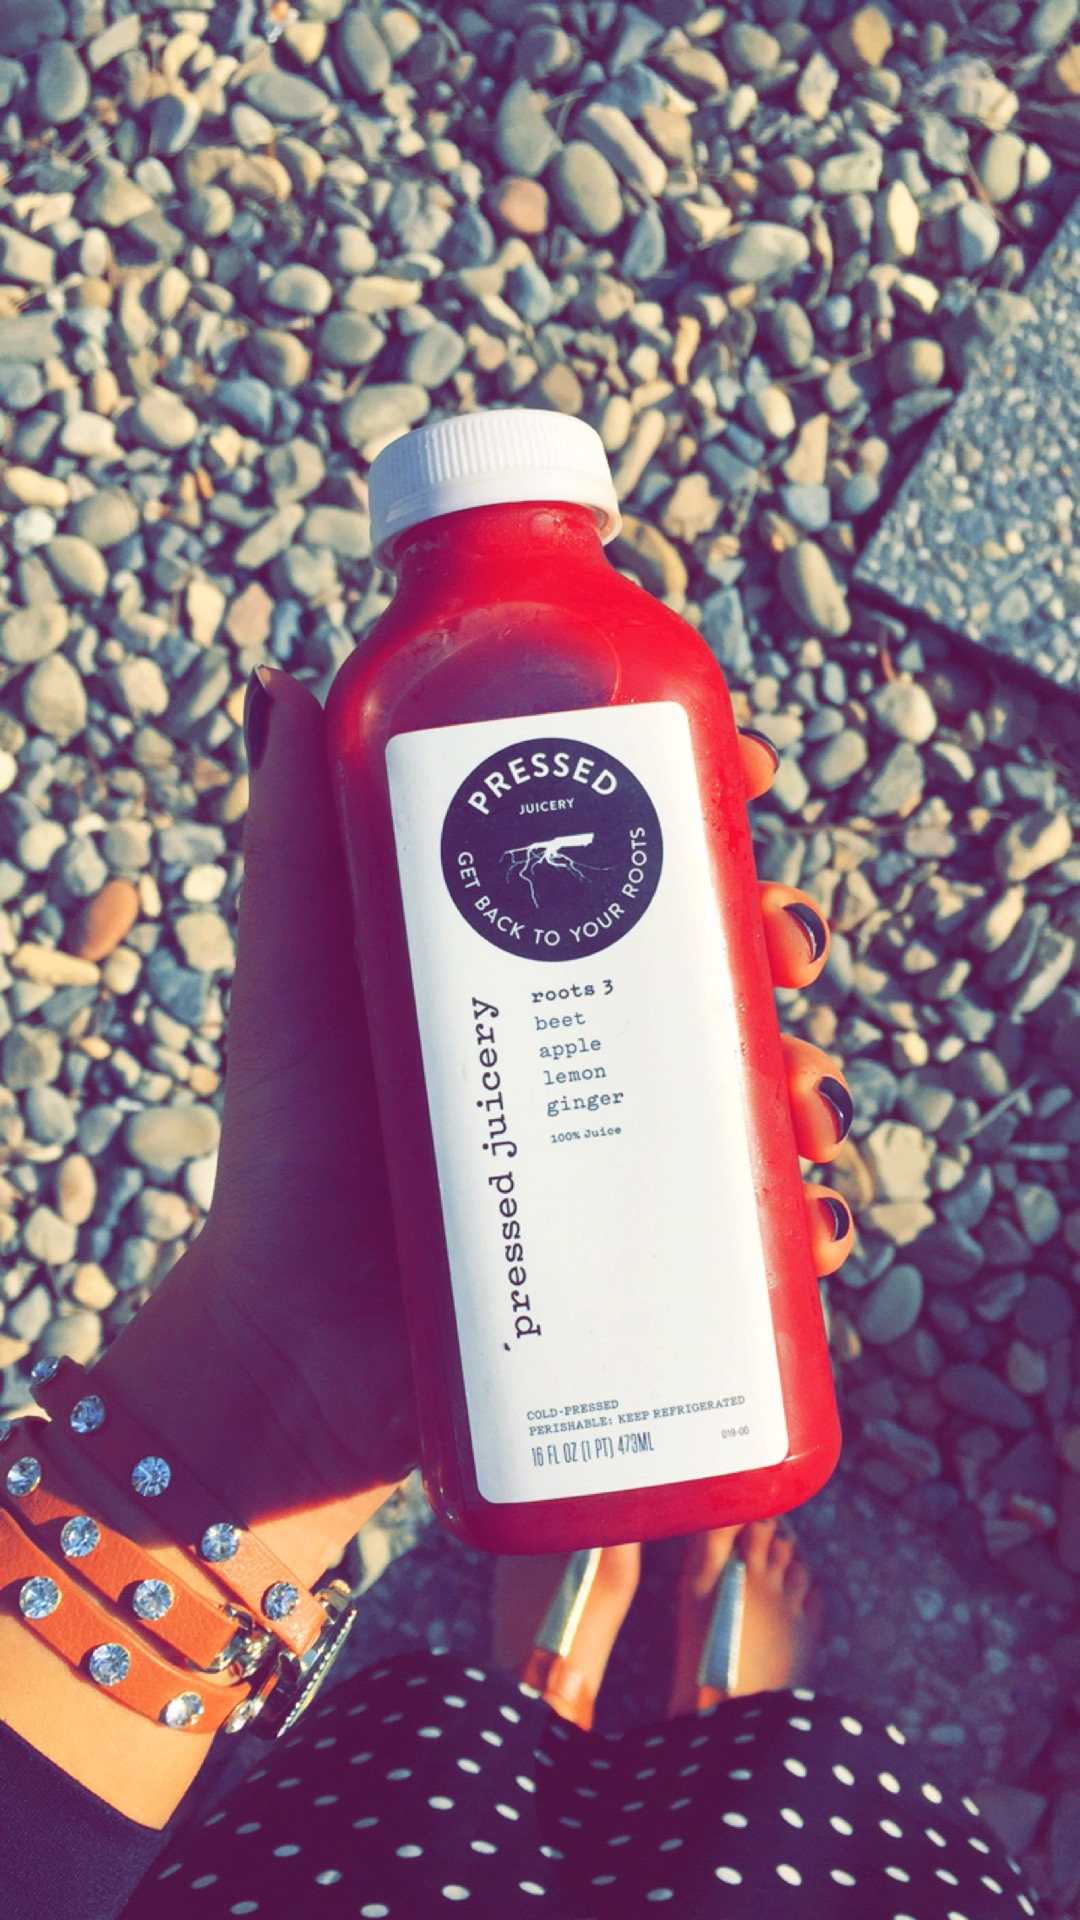 Juice cleanse has many benefits. I always encourage #StudentsAtAntioch to try detoxing with juices from Pressed Juicery, located at Paseo Nuevo. -Mia Hayat